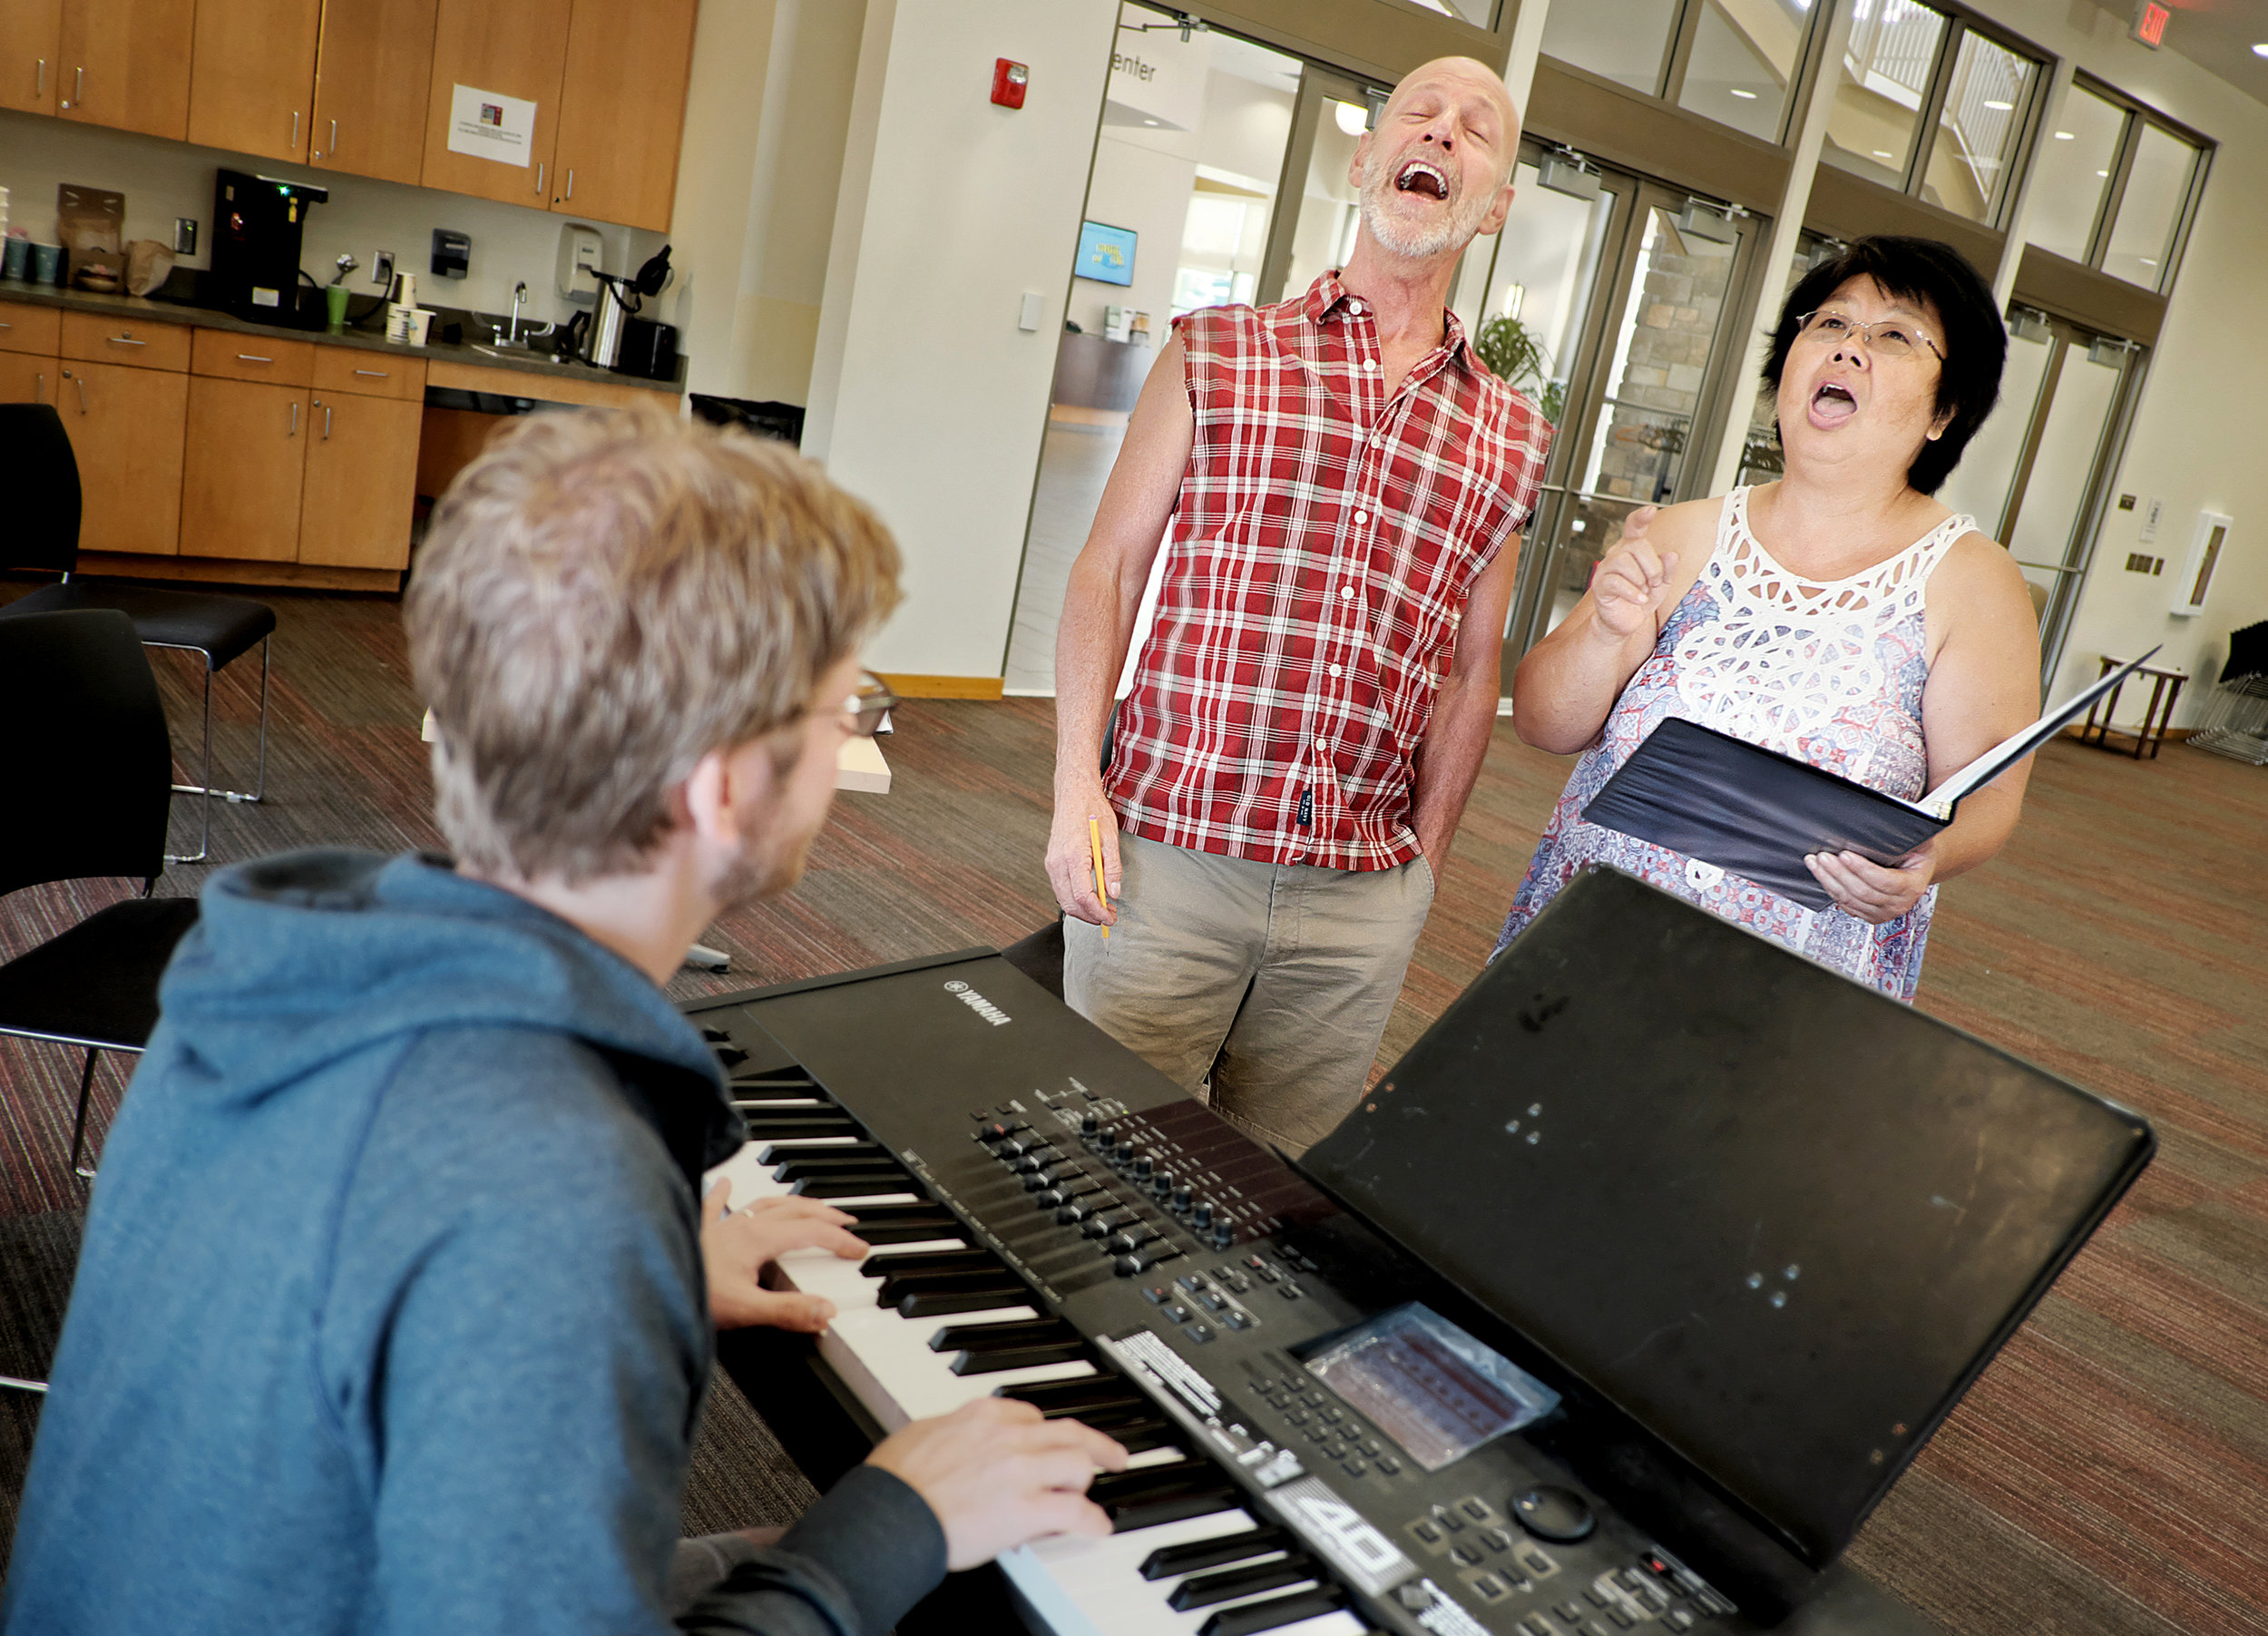 """Twin Cities' premier senior rock group """"Alive & Kickin"""" artistic director Michael Ferrell, center, helps Agnes Chik-Fufa belt out a song during an audition for the group. Afterwards, Ferrell told music director Jason Hansen, left, """"We've got a new rocker and she's gonna be good."""" The group meets at the Cora McCorvey Health and Wellness Center each Monday."""